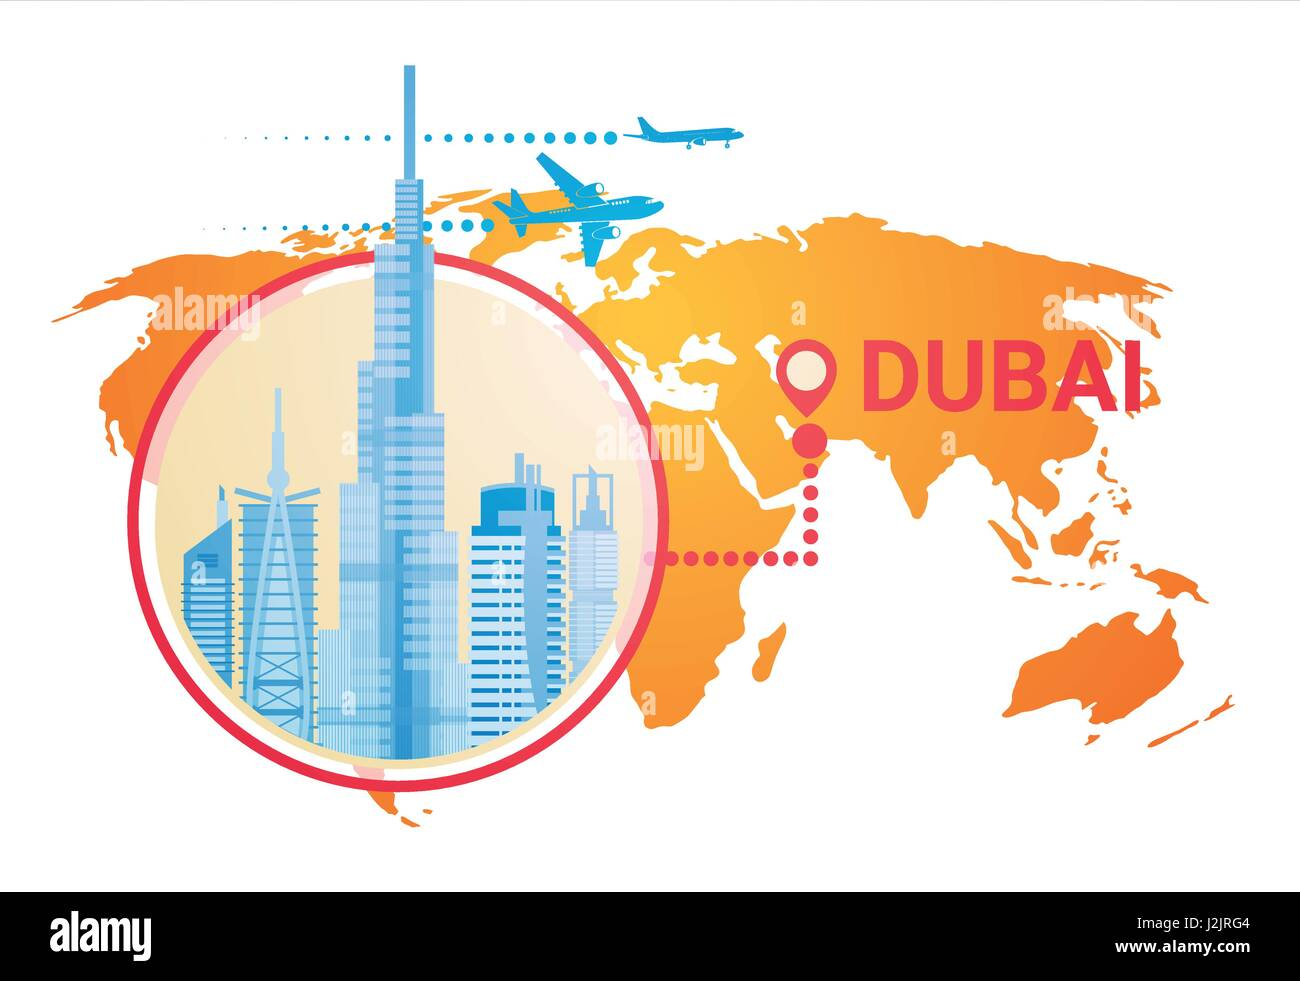 dubai skyline panorama over world map modern building cityscape business travel and tourism concept